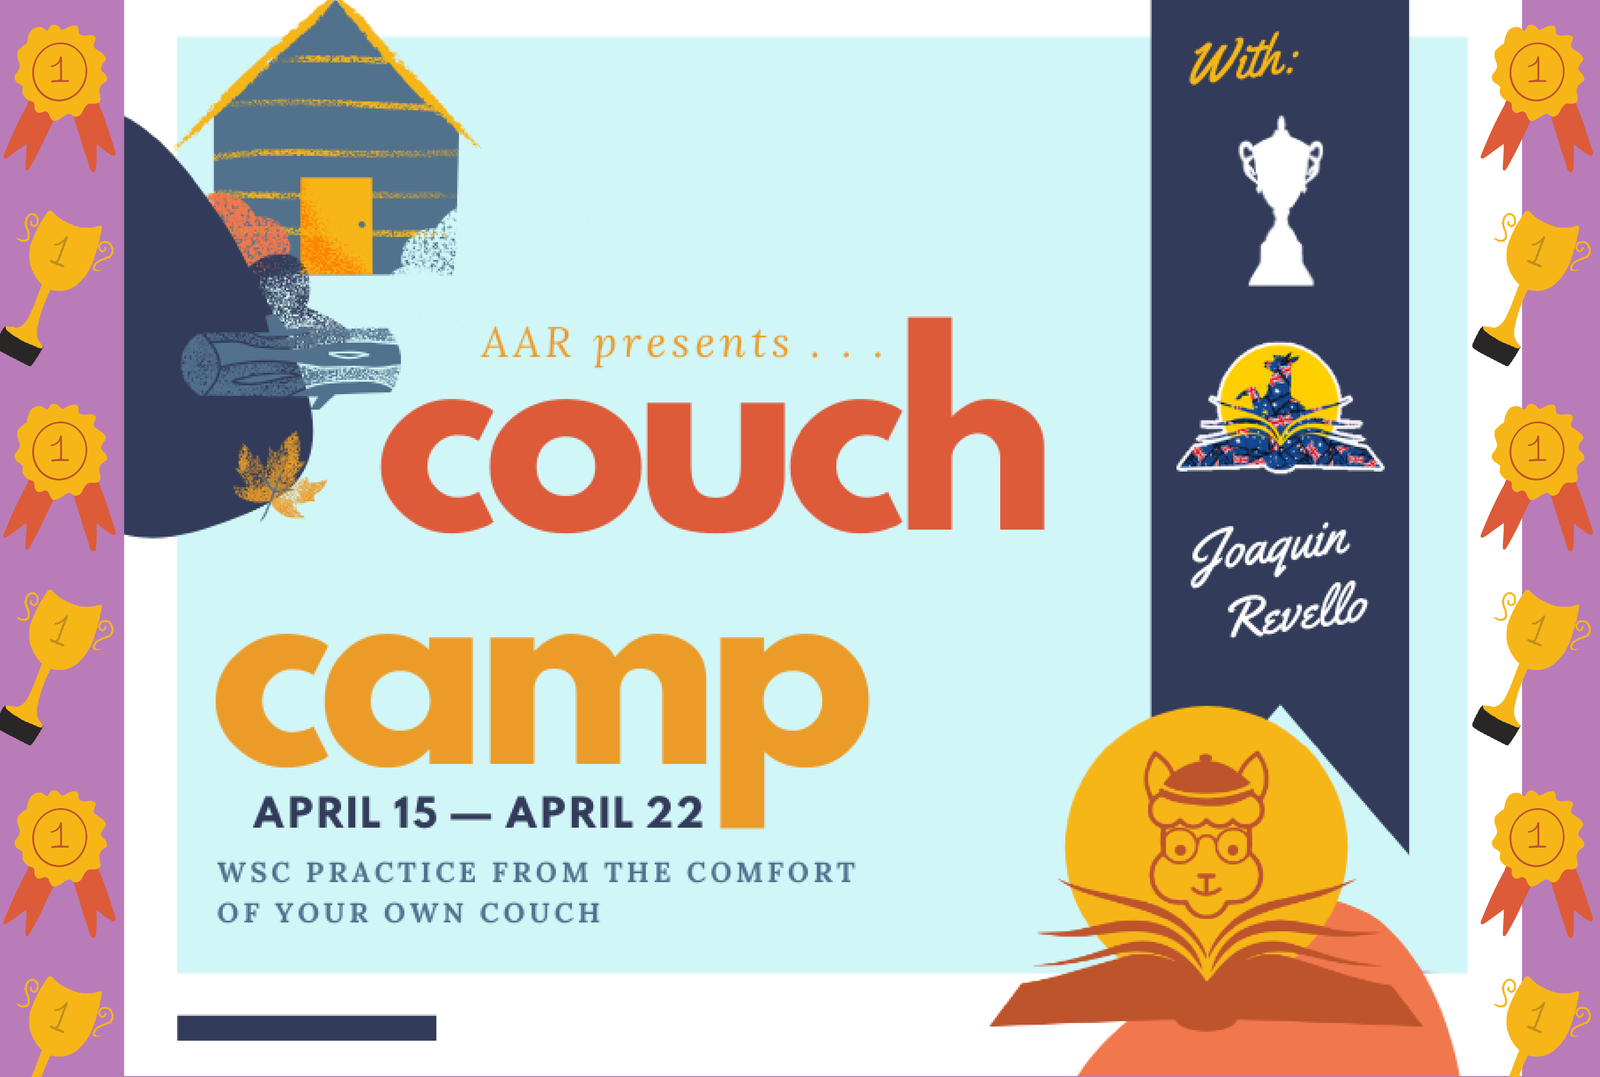 Couch Camp promotional banner surrounded by medals on a purple background